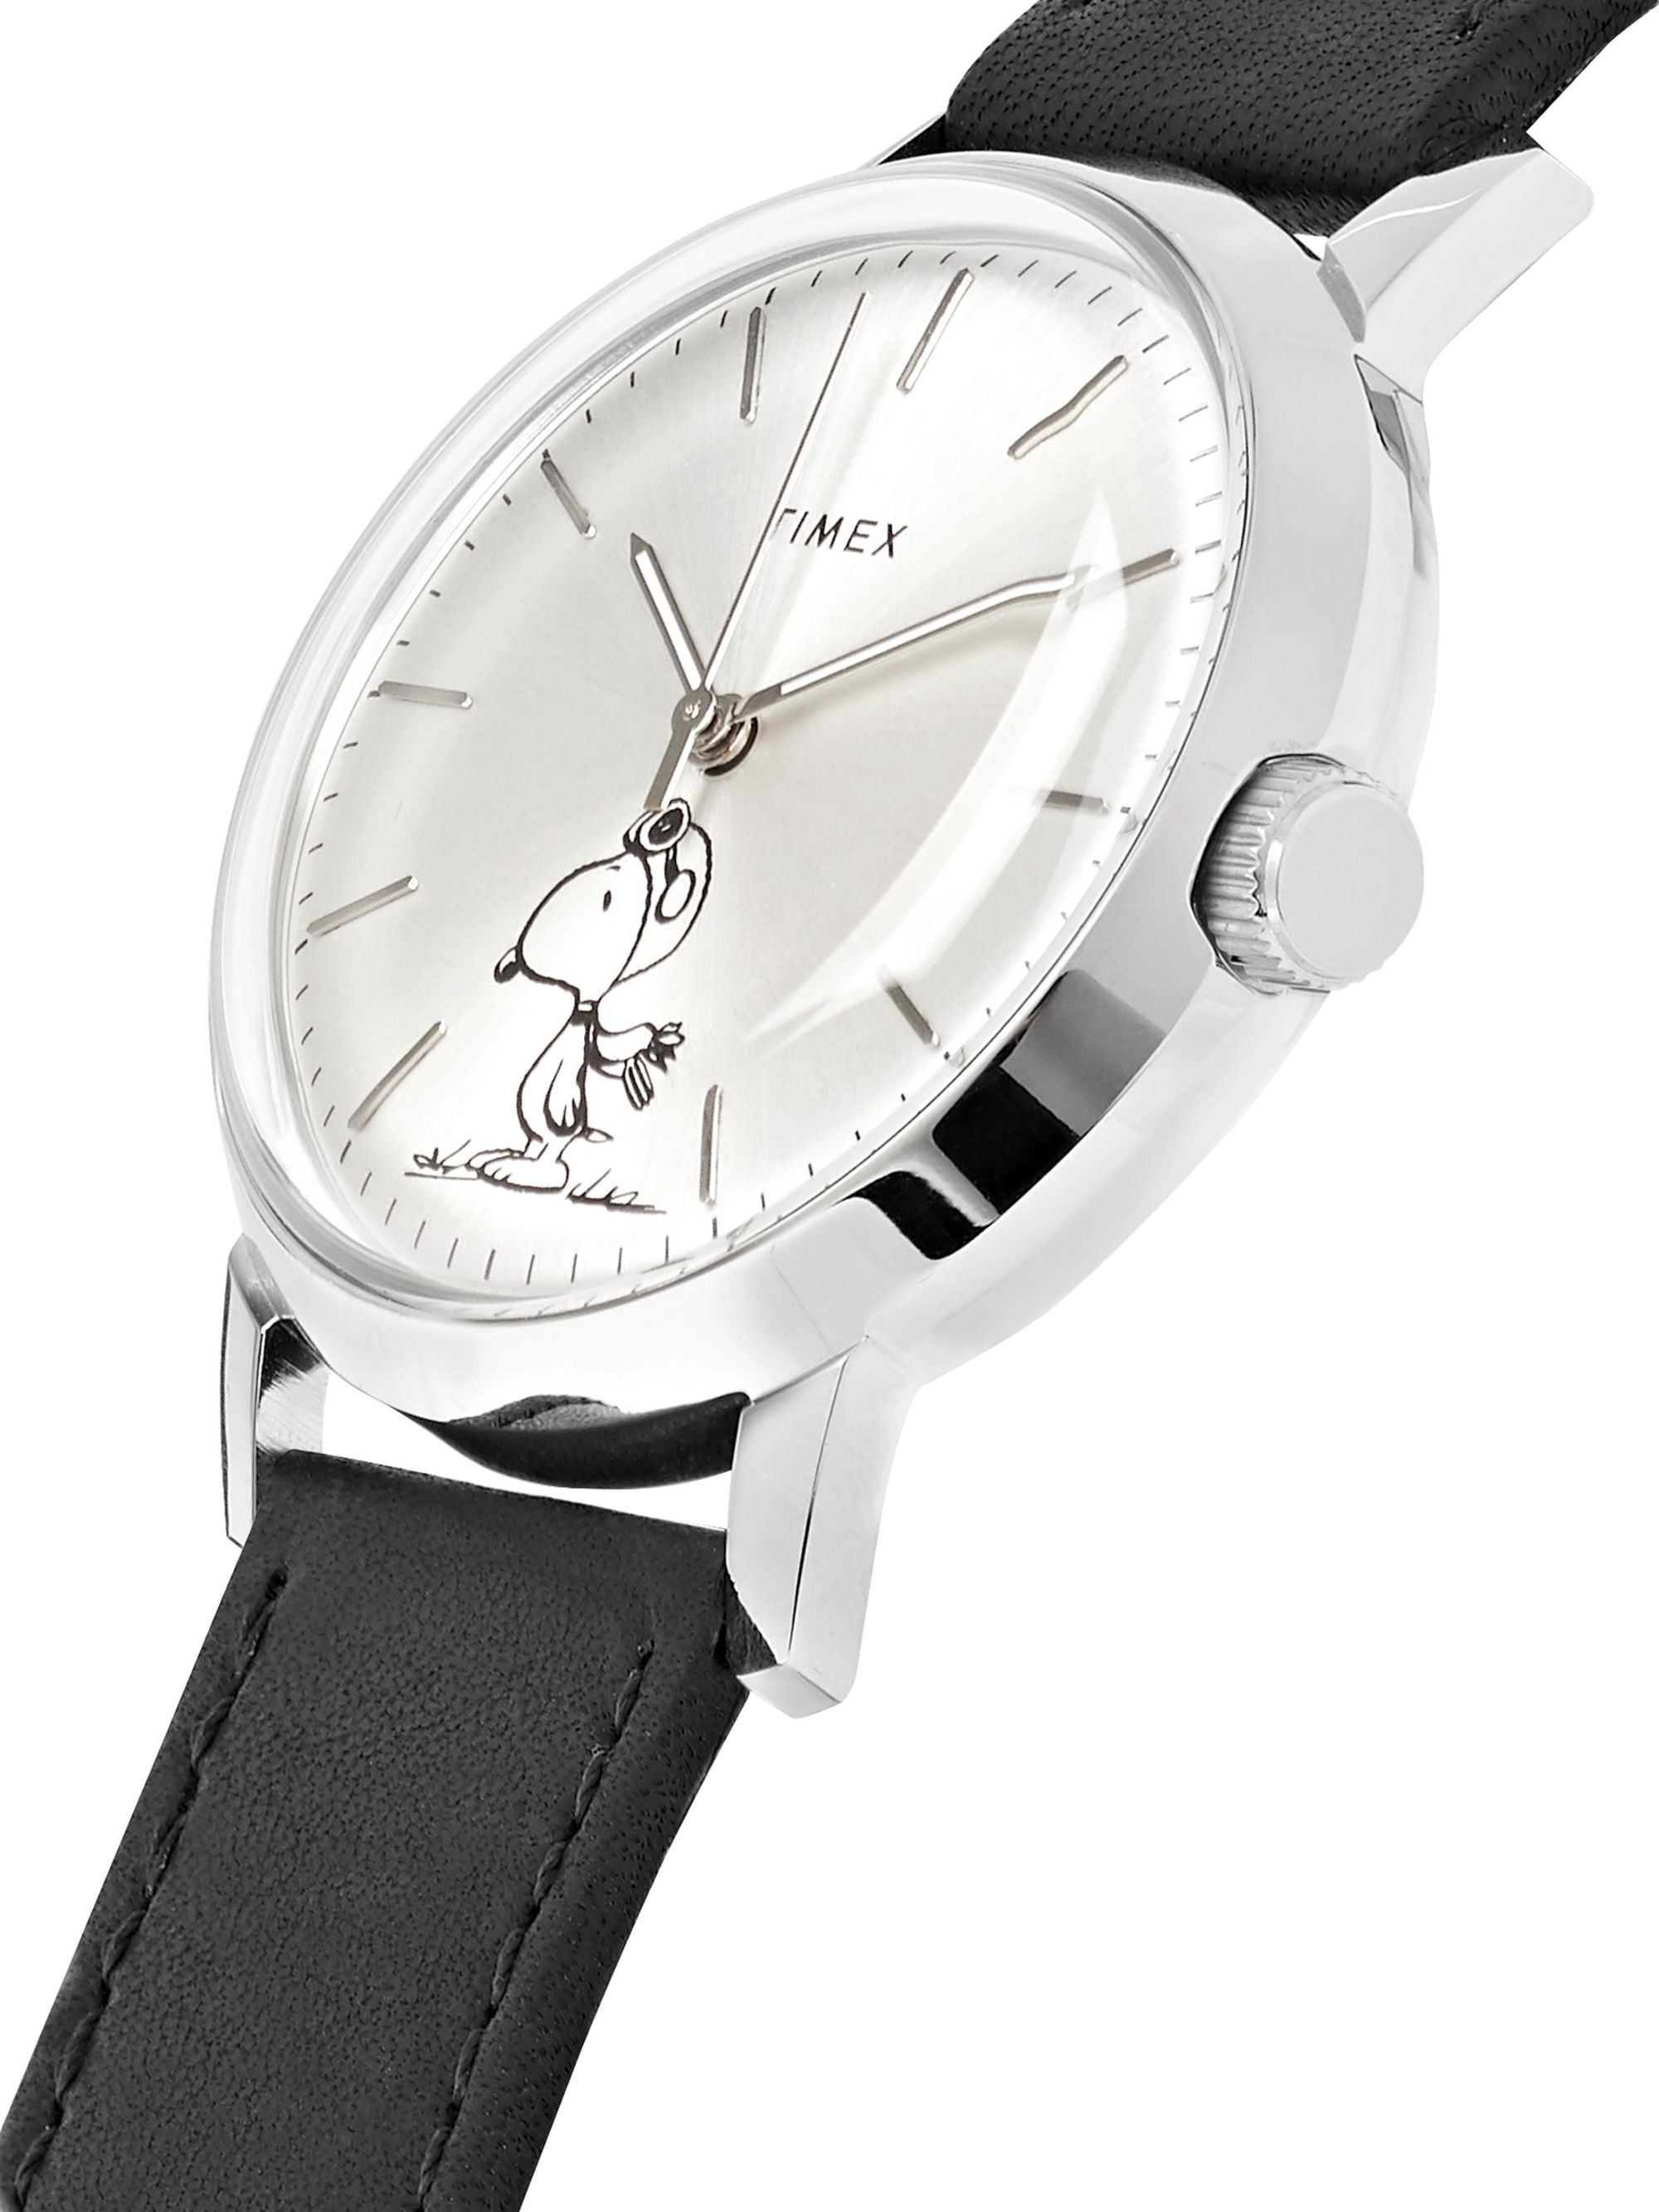 Timex + Peanuts Marlin Automatic Stainless Steel and Leather Watch